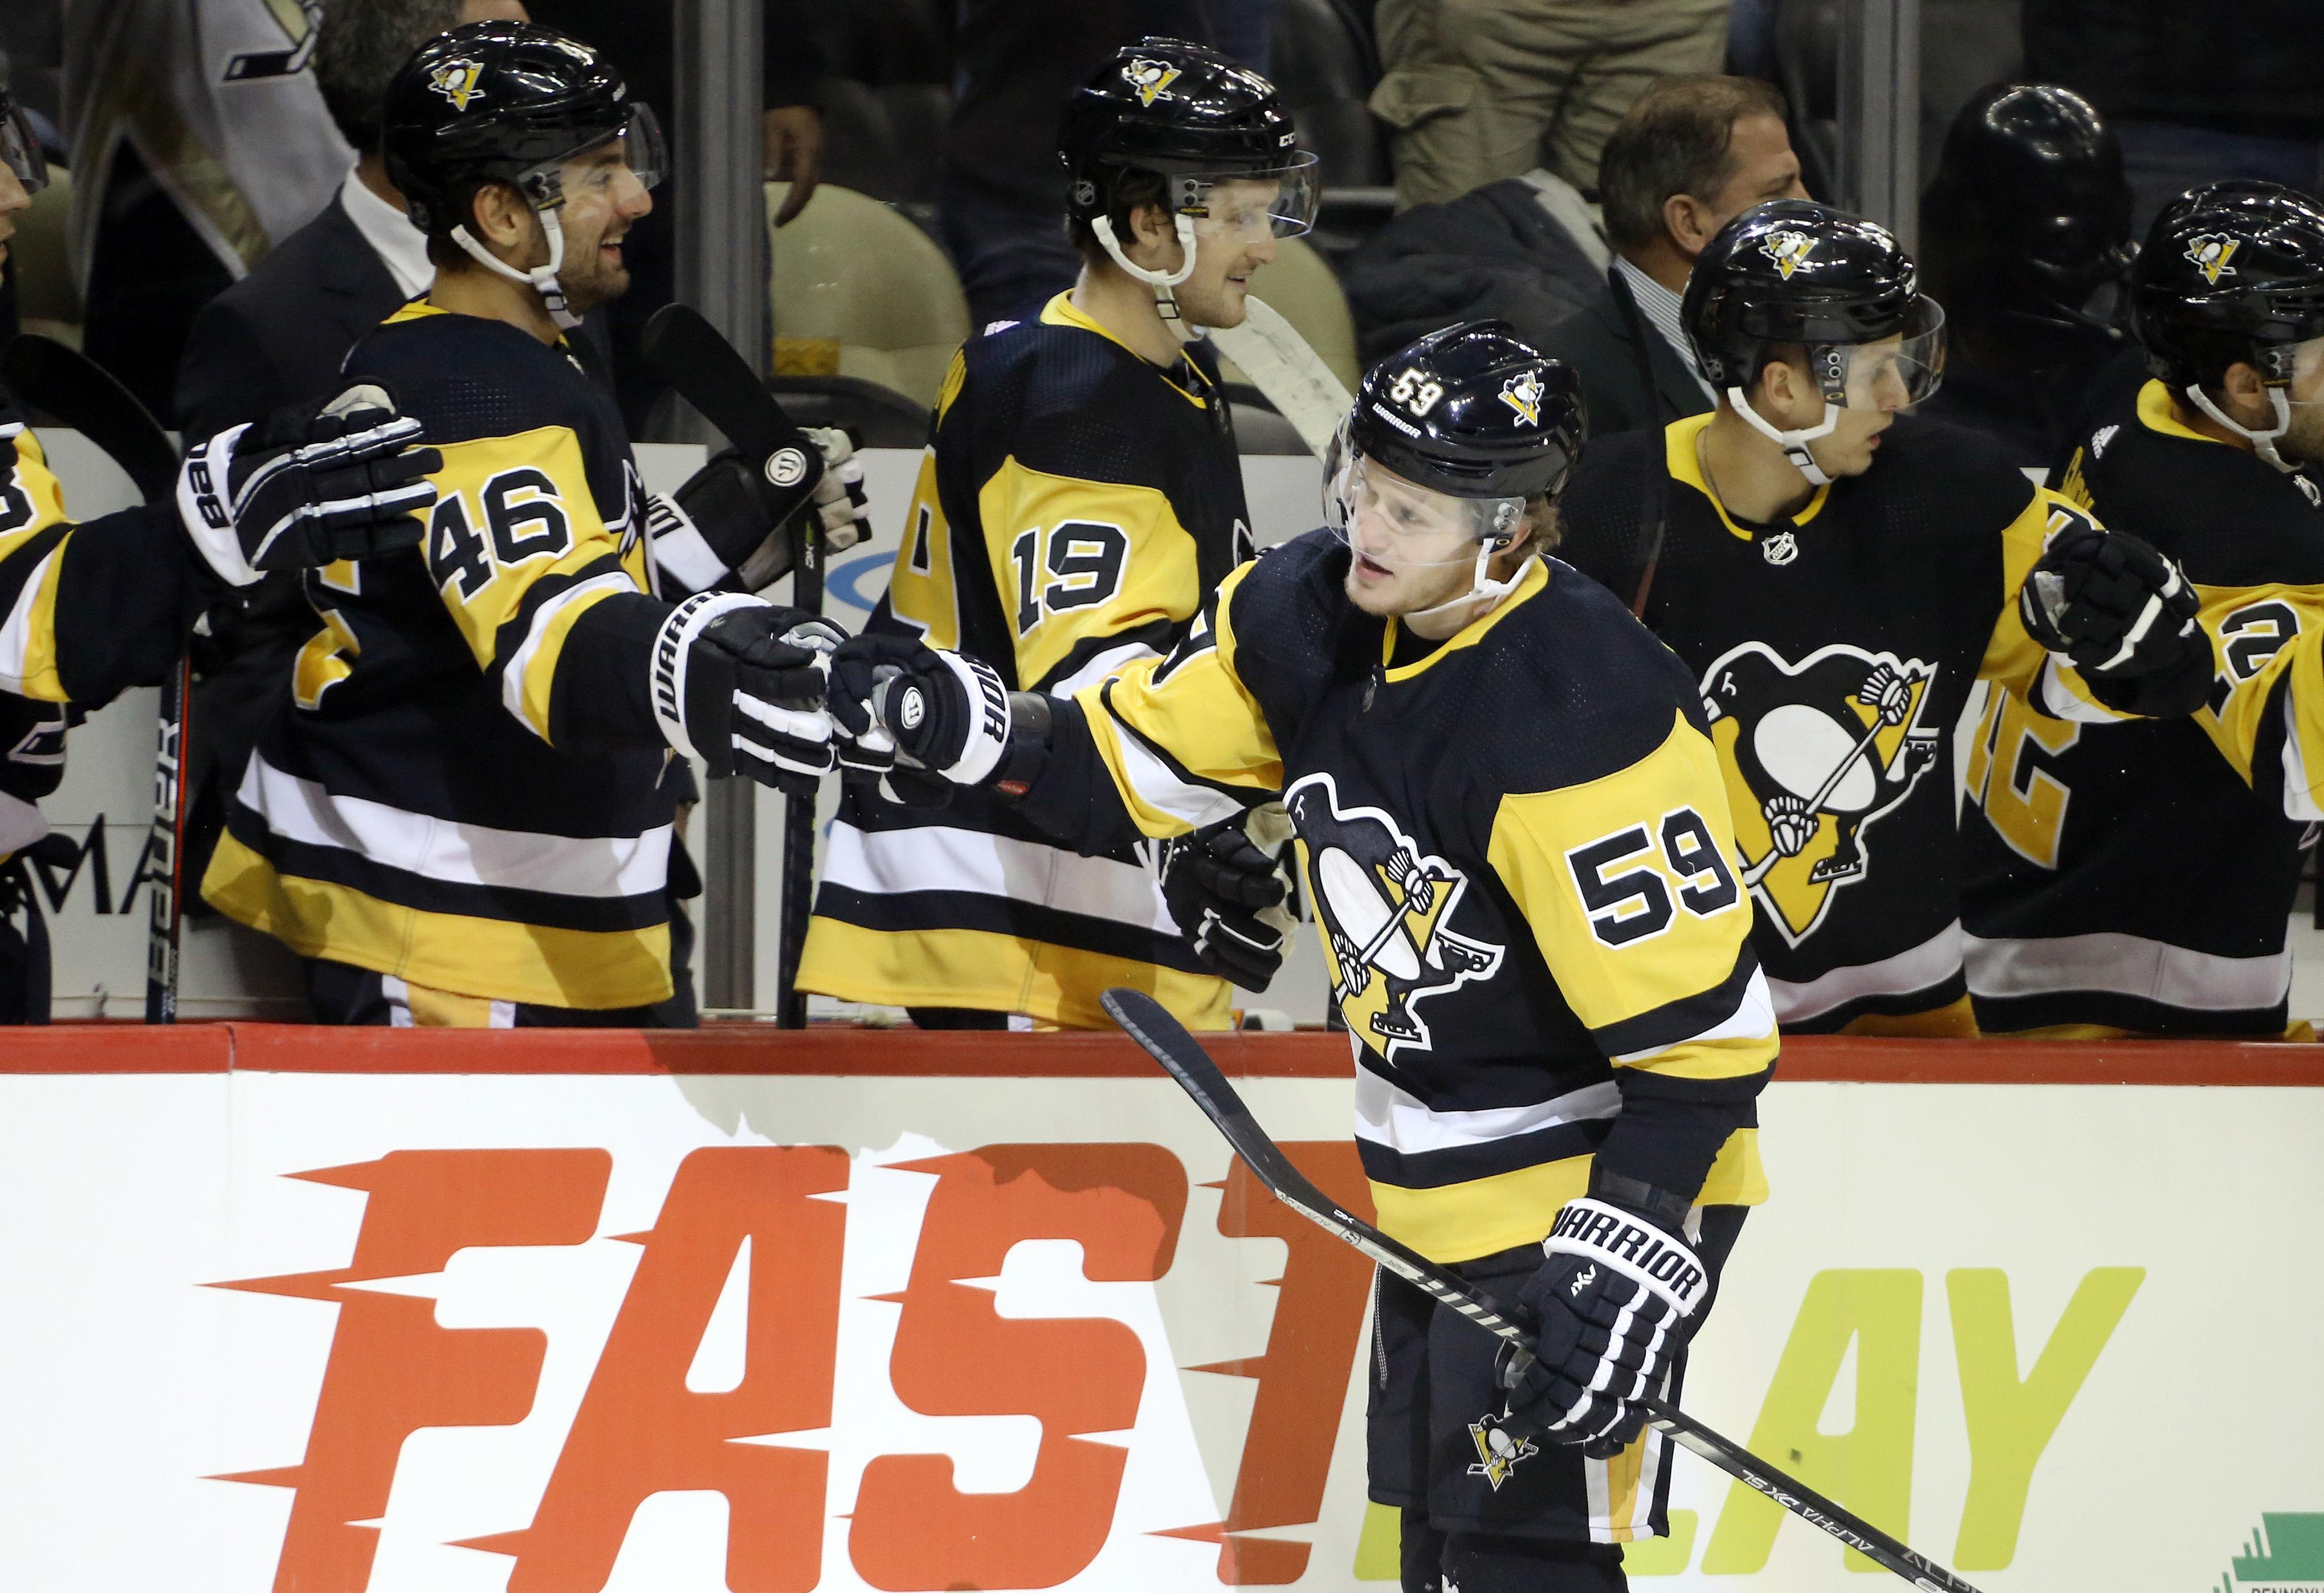 Big second period gives Habs 4-1 win over Penguins